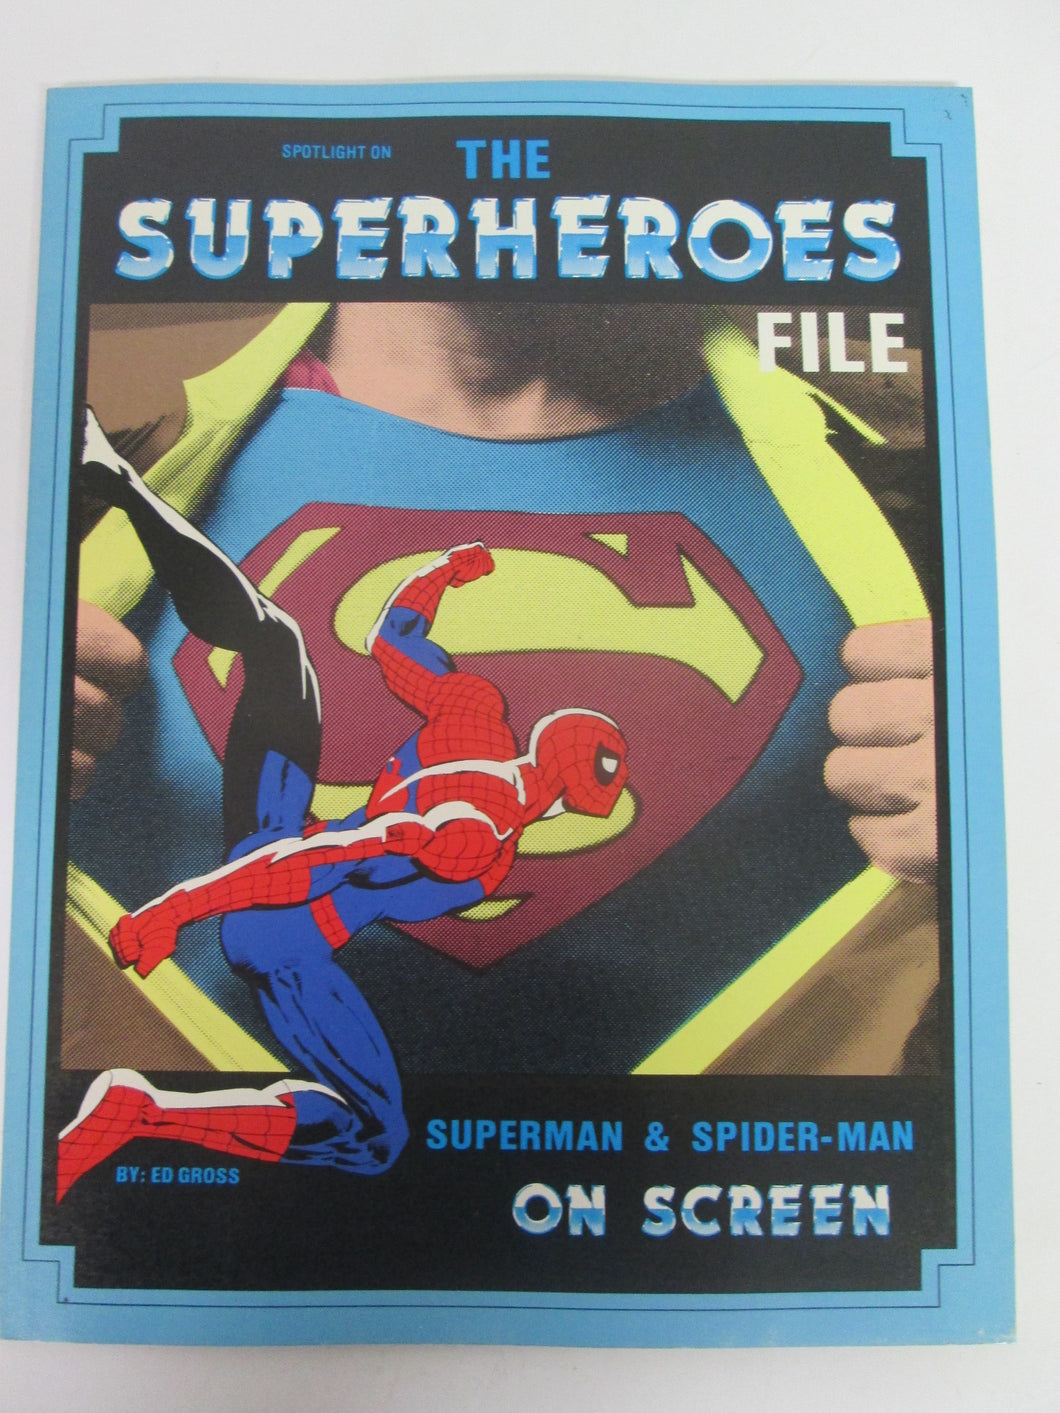 The Superheroes File Superman and Spider-Man On Screen by Ed Gross 1986 PB